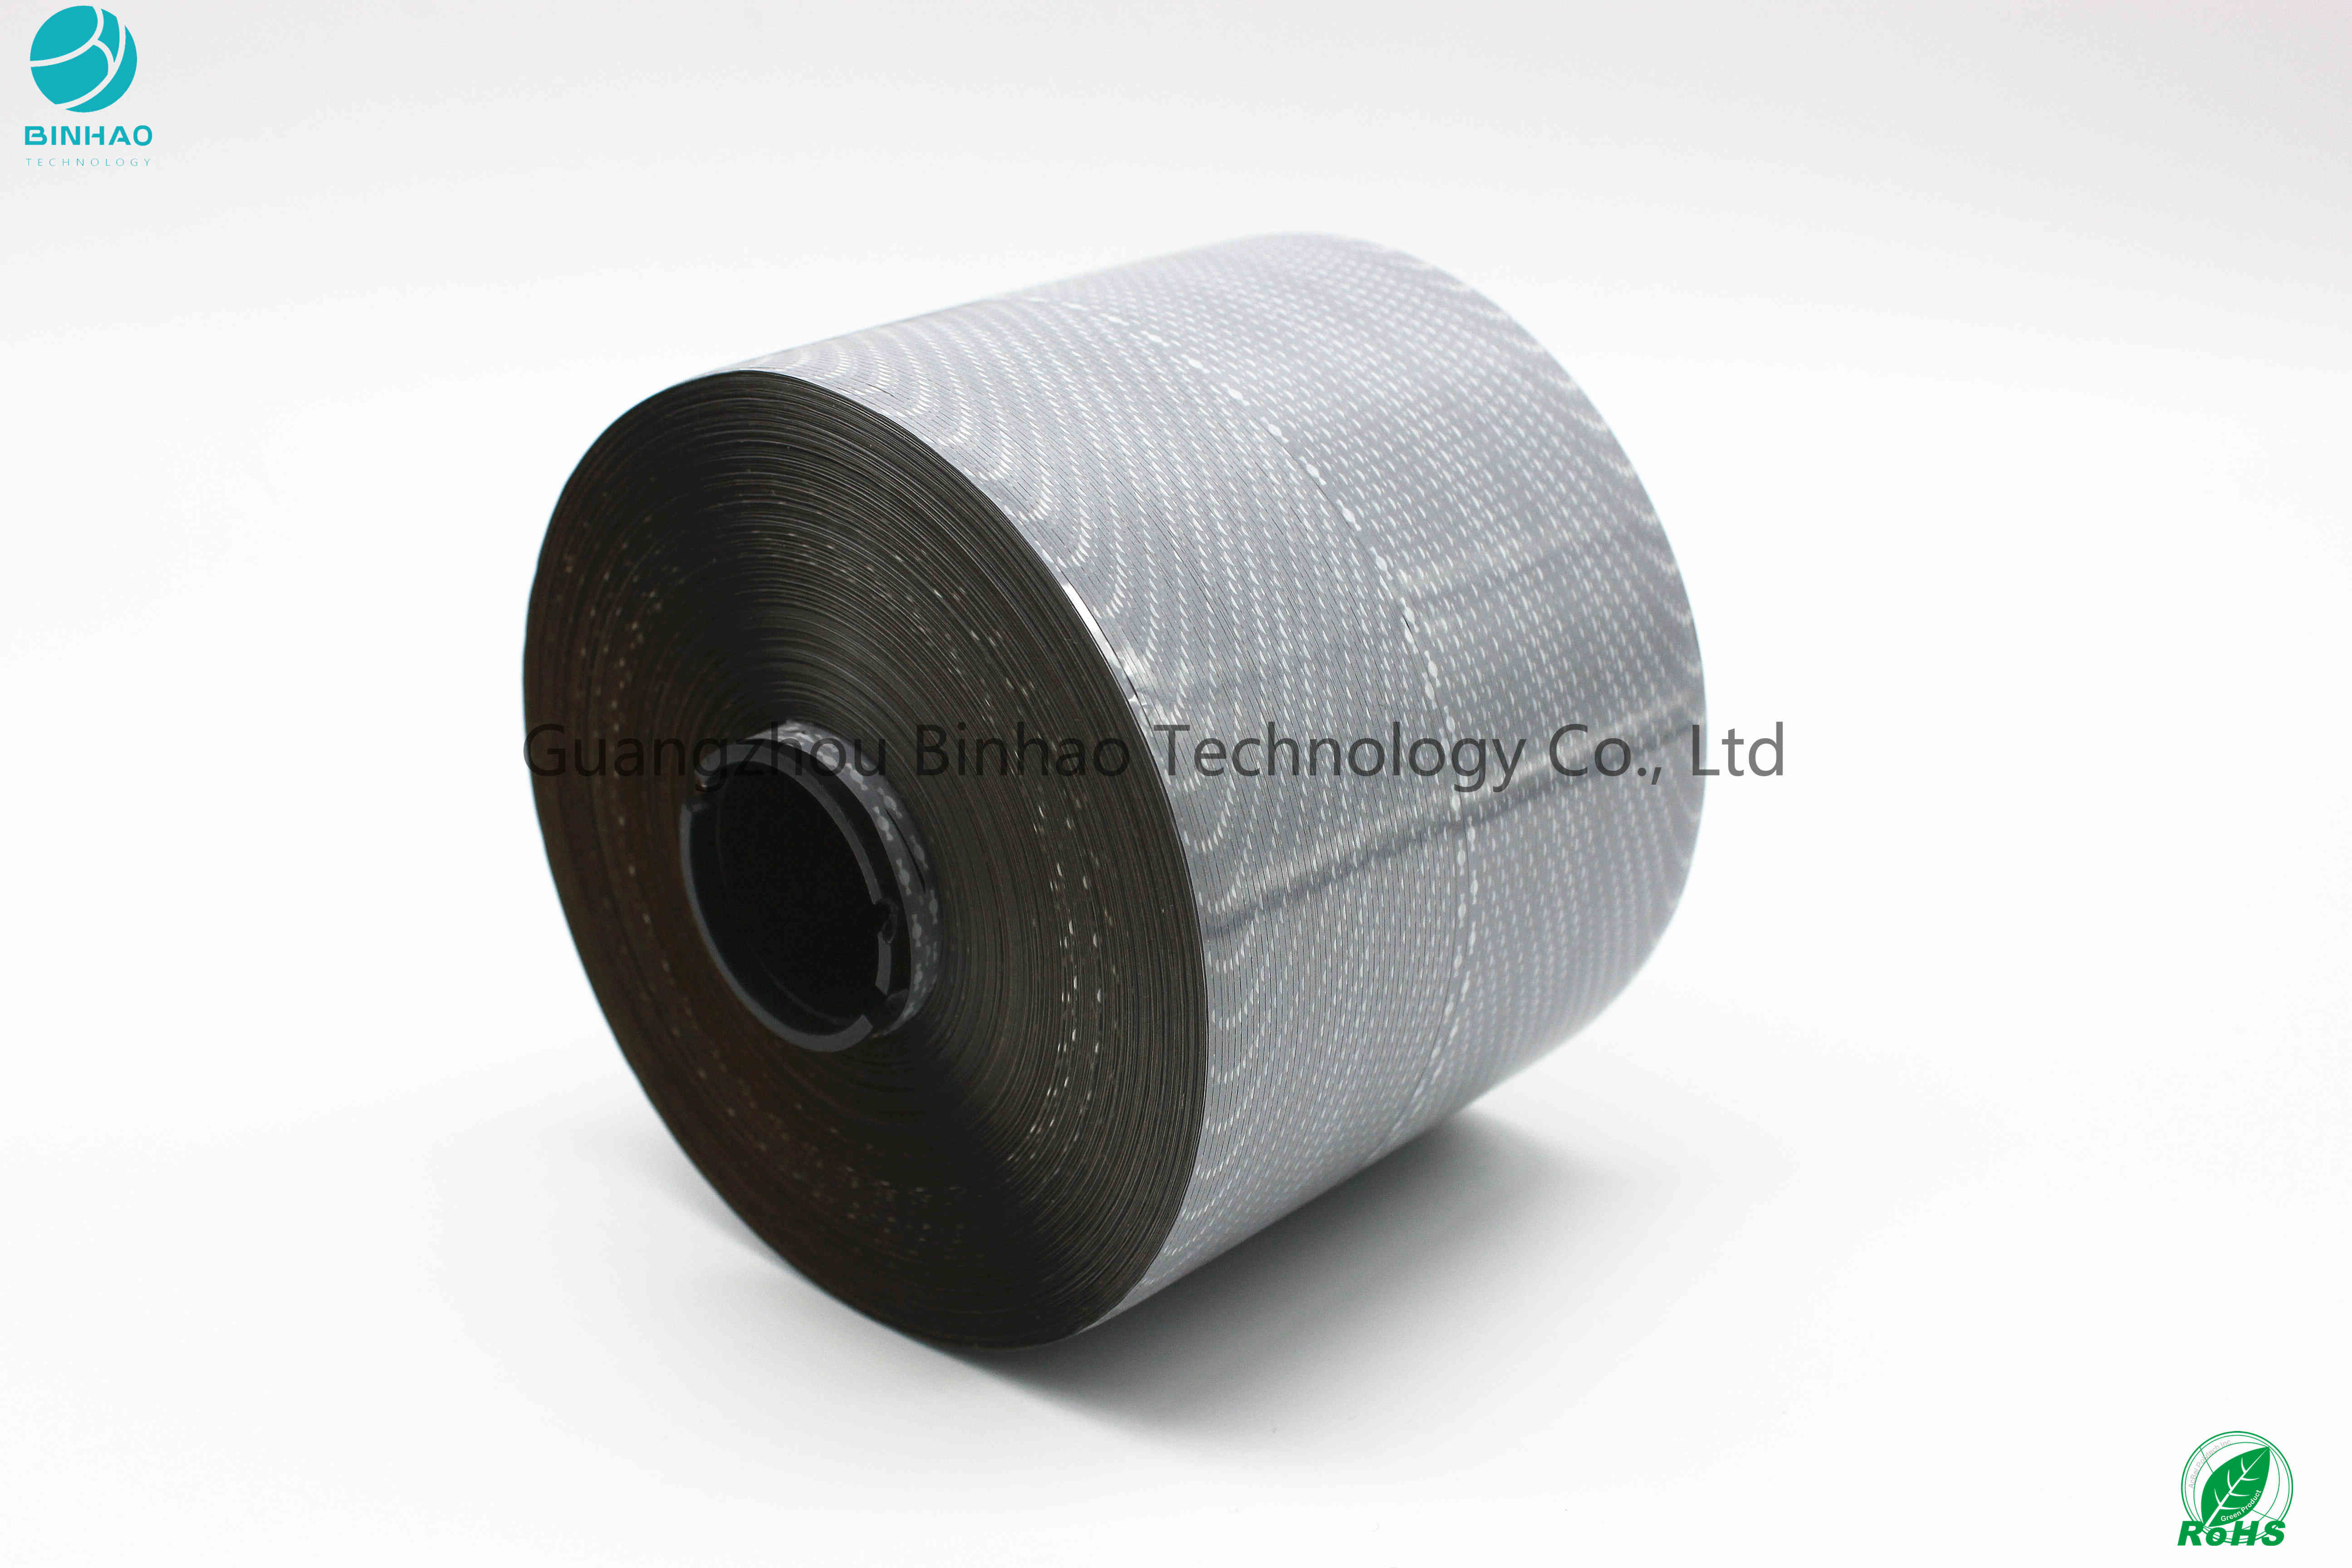 28 Micron Grayness Tear Strip Tape Moistureproof With Custom Printing